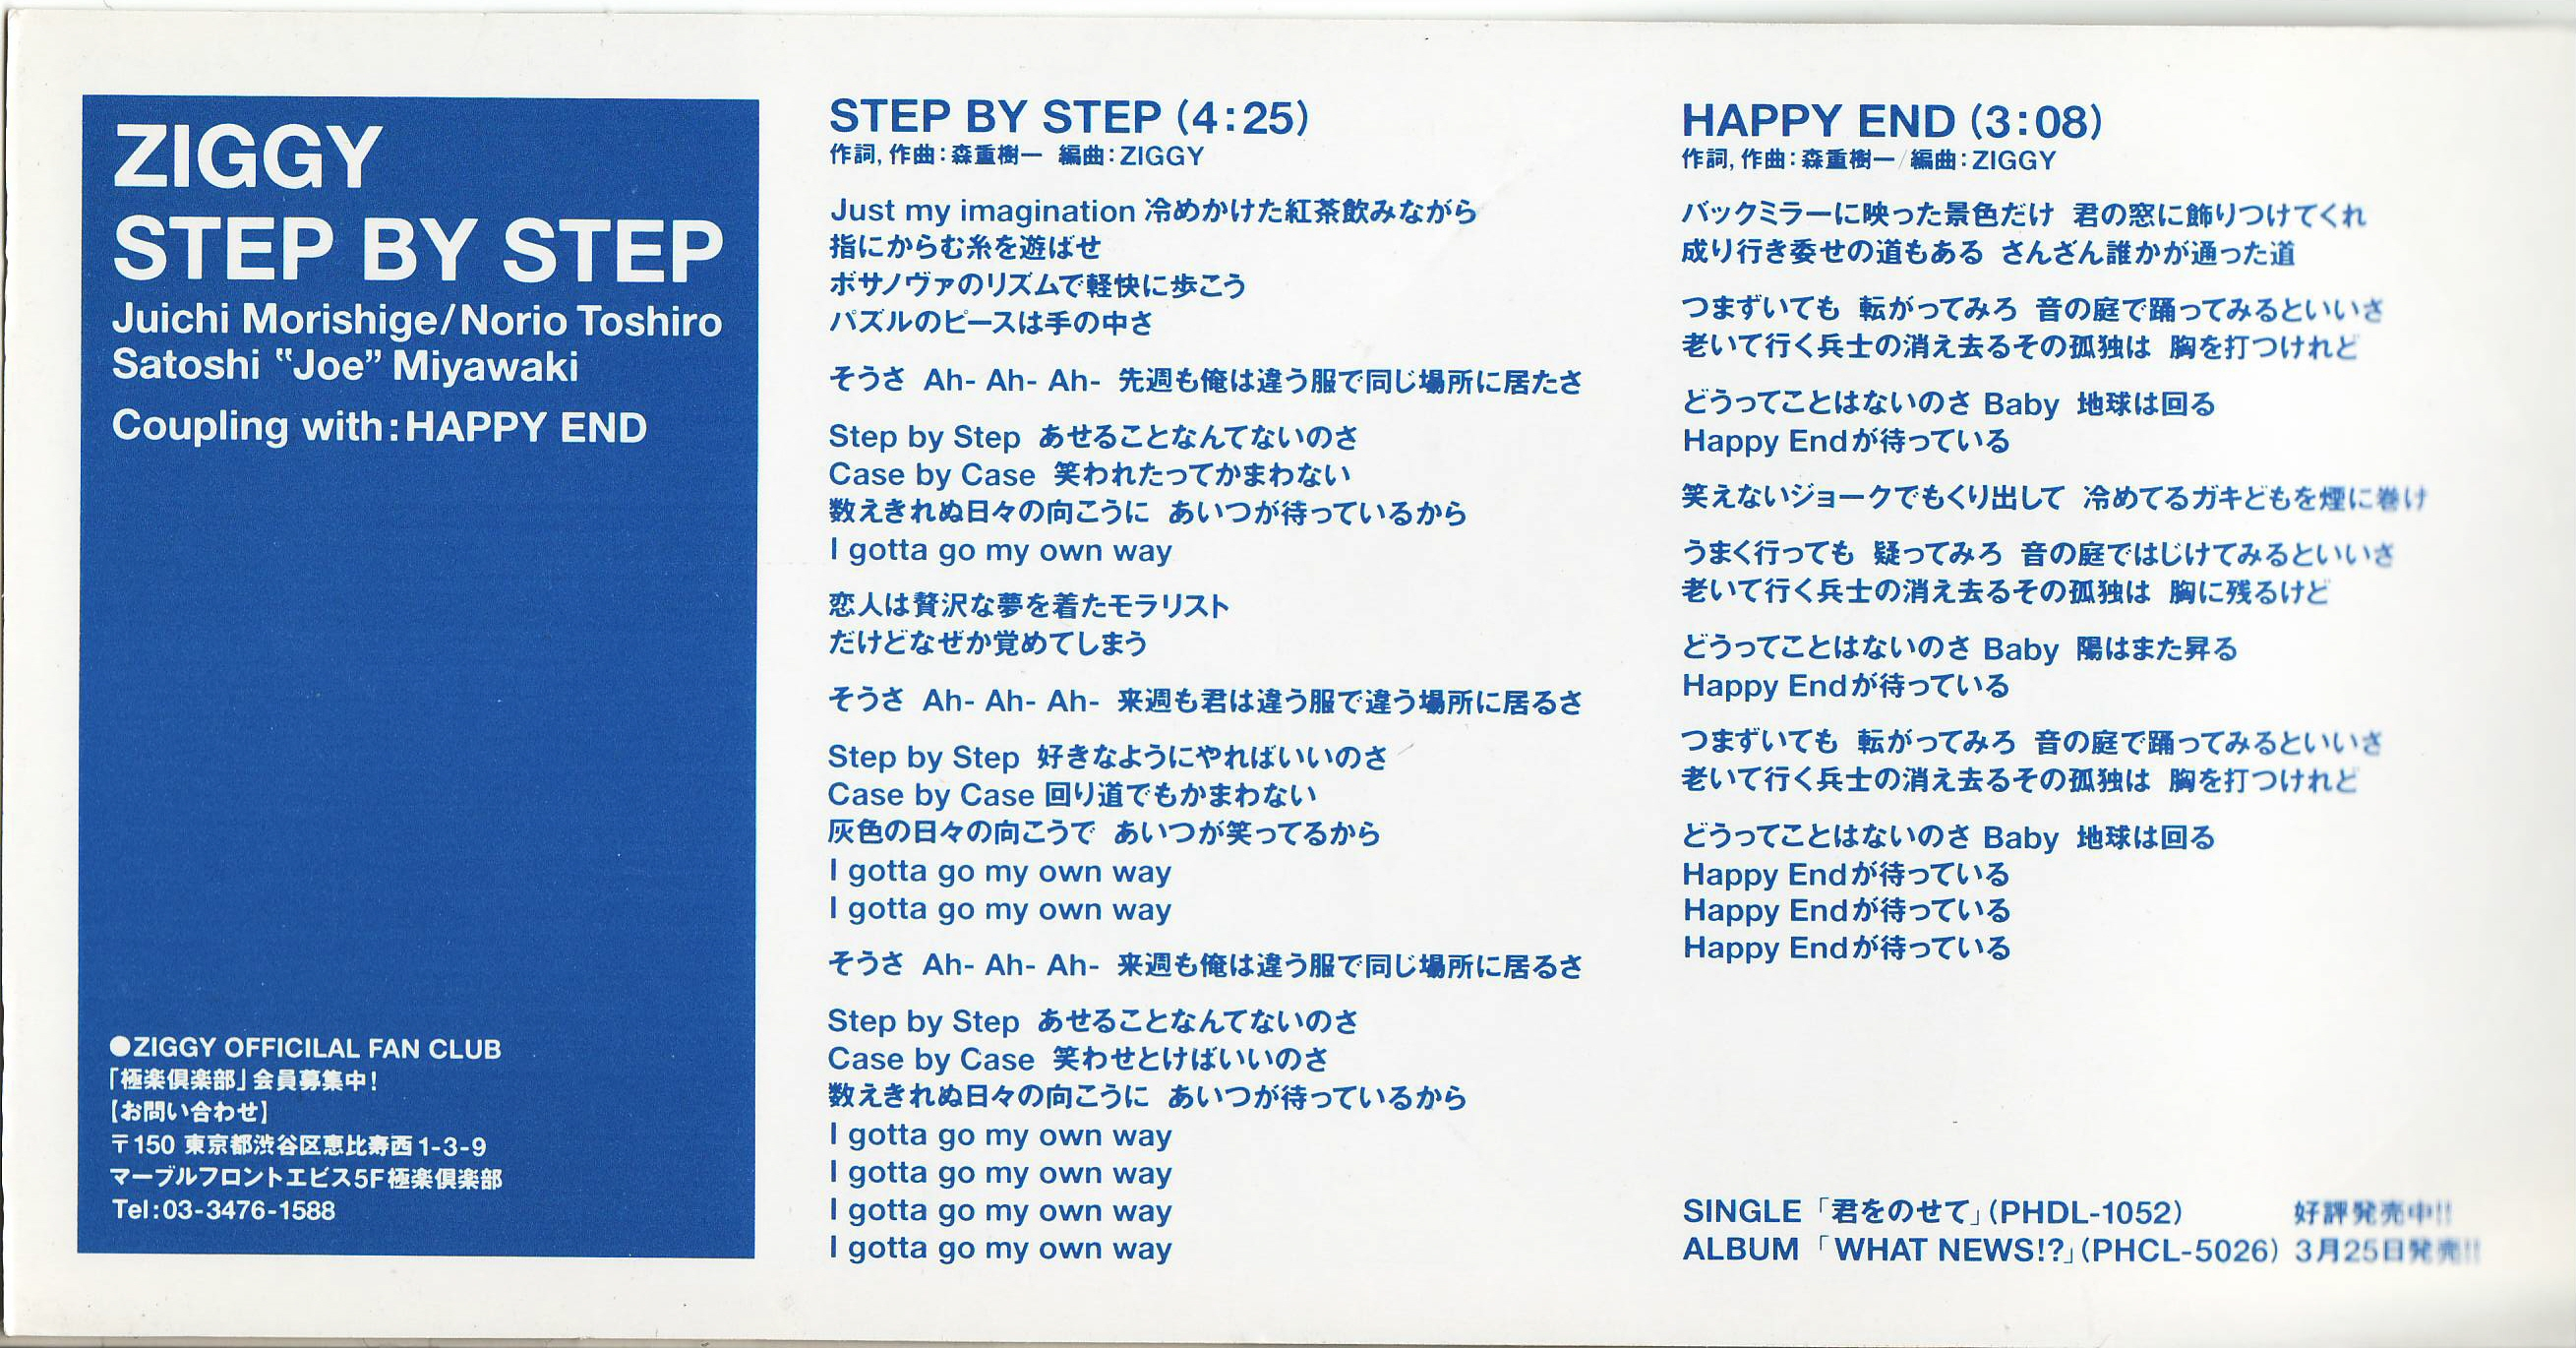 명탐정 코난 ED1 - STEP BY STEP(ZIGGY)